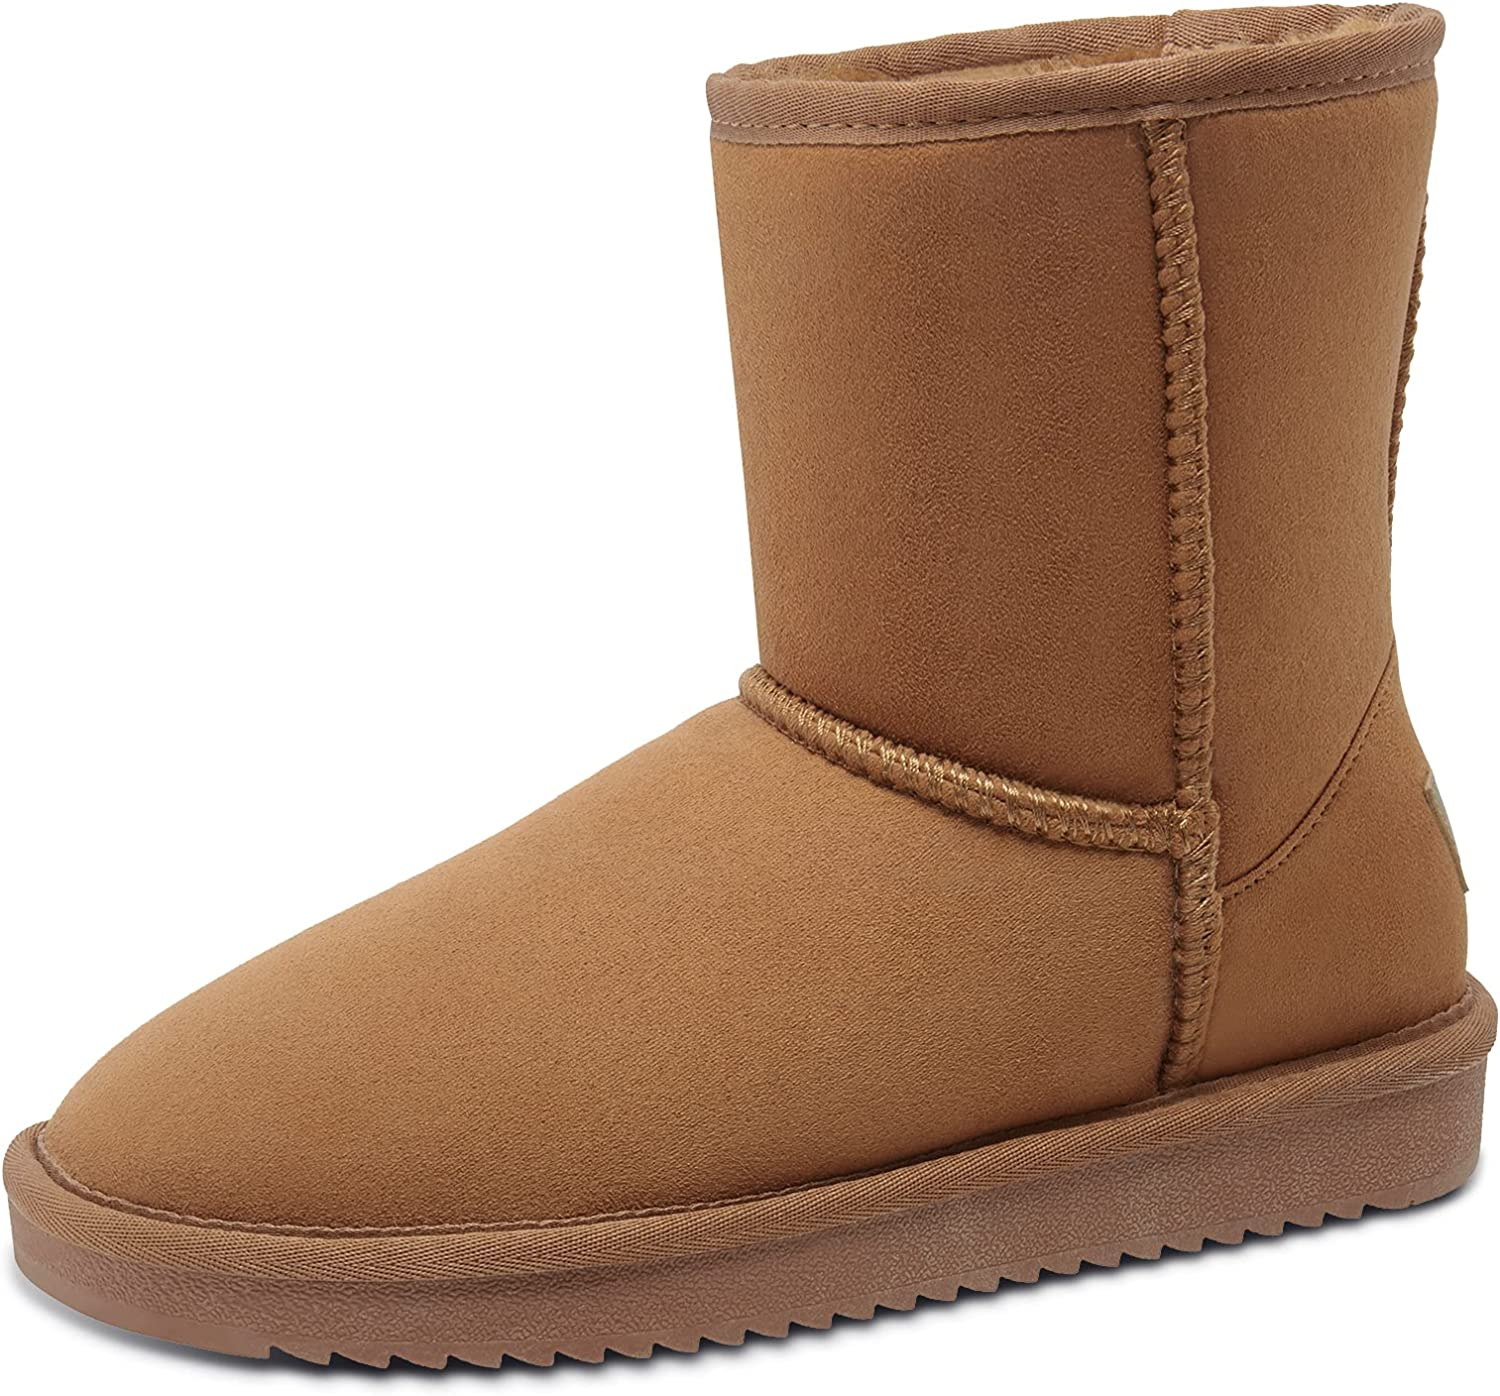 Women's Warm Winter Boots Ankle Max 64% OFF High Vegan Suede Sh Faux Classic Popular overseas